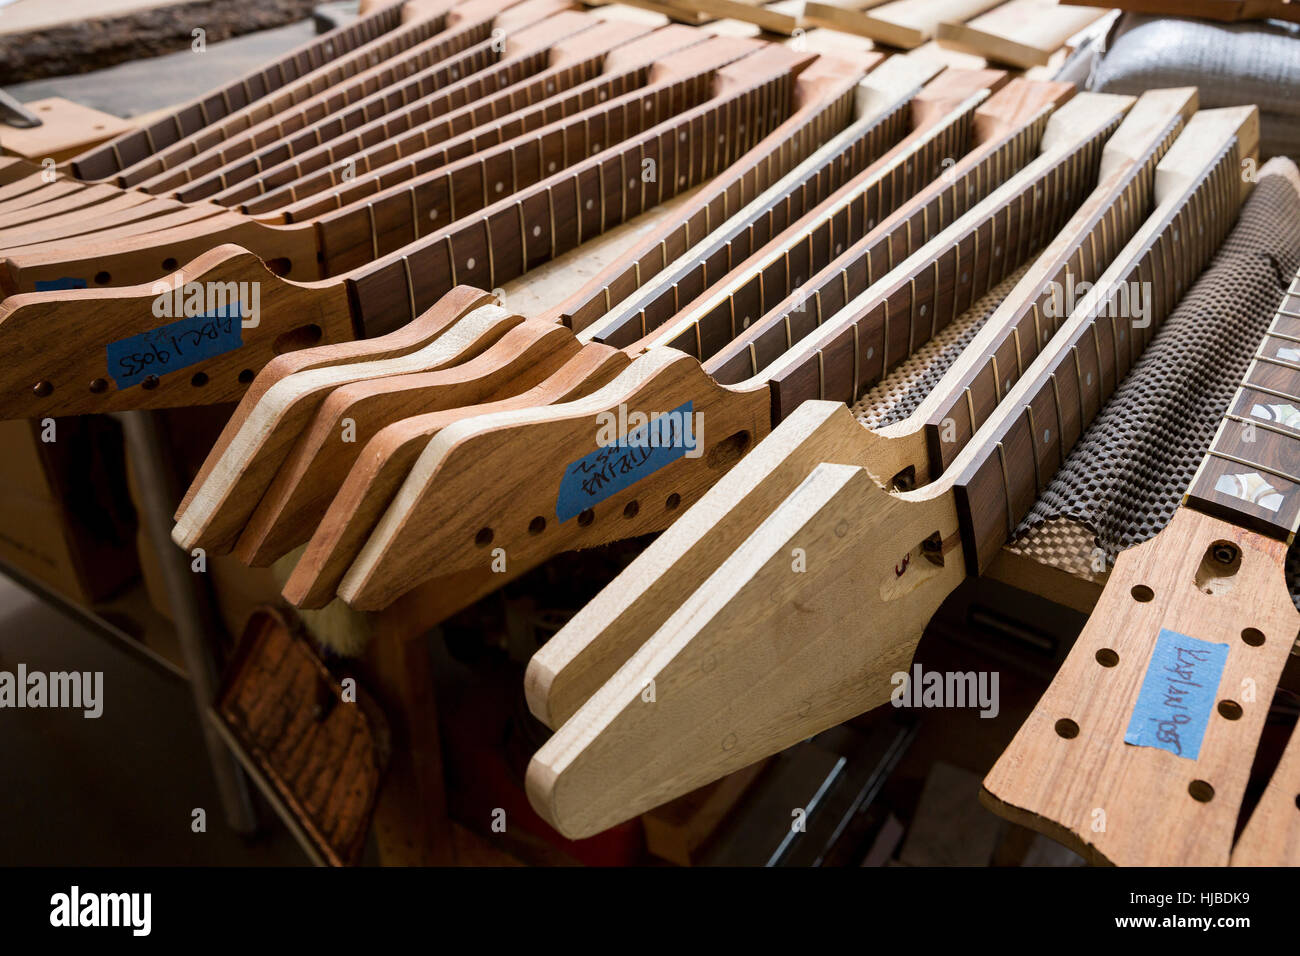 Headstocks and necks of guitars in workshop - Stock Image